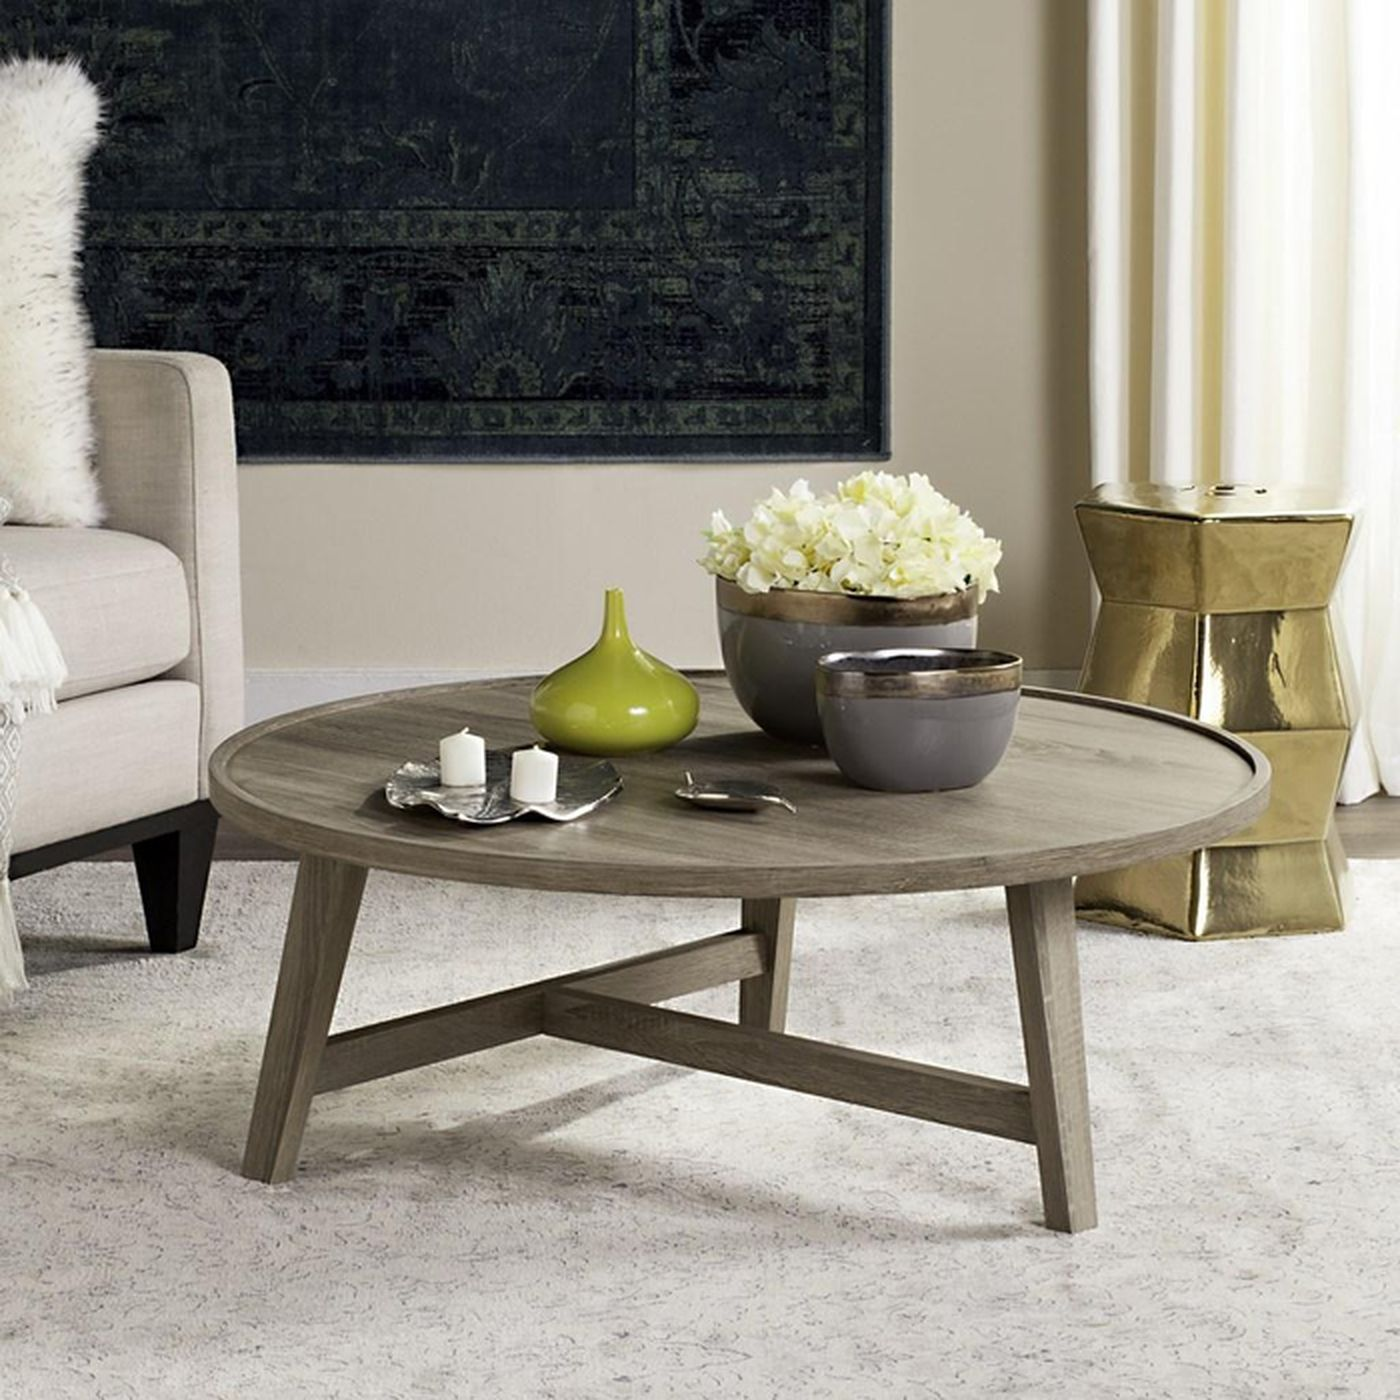 Kendall Coffee Table Cove Goods In 2021 Round Wood Coffee Table Coffee Table Wood Mid Century Coffee Table [ 1400 x 1400 Pixel ]